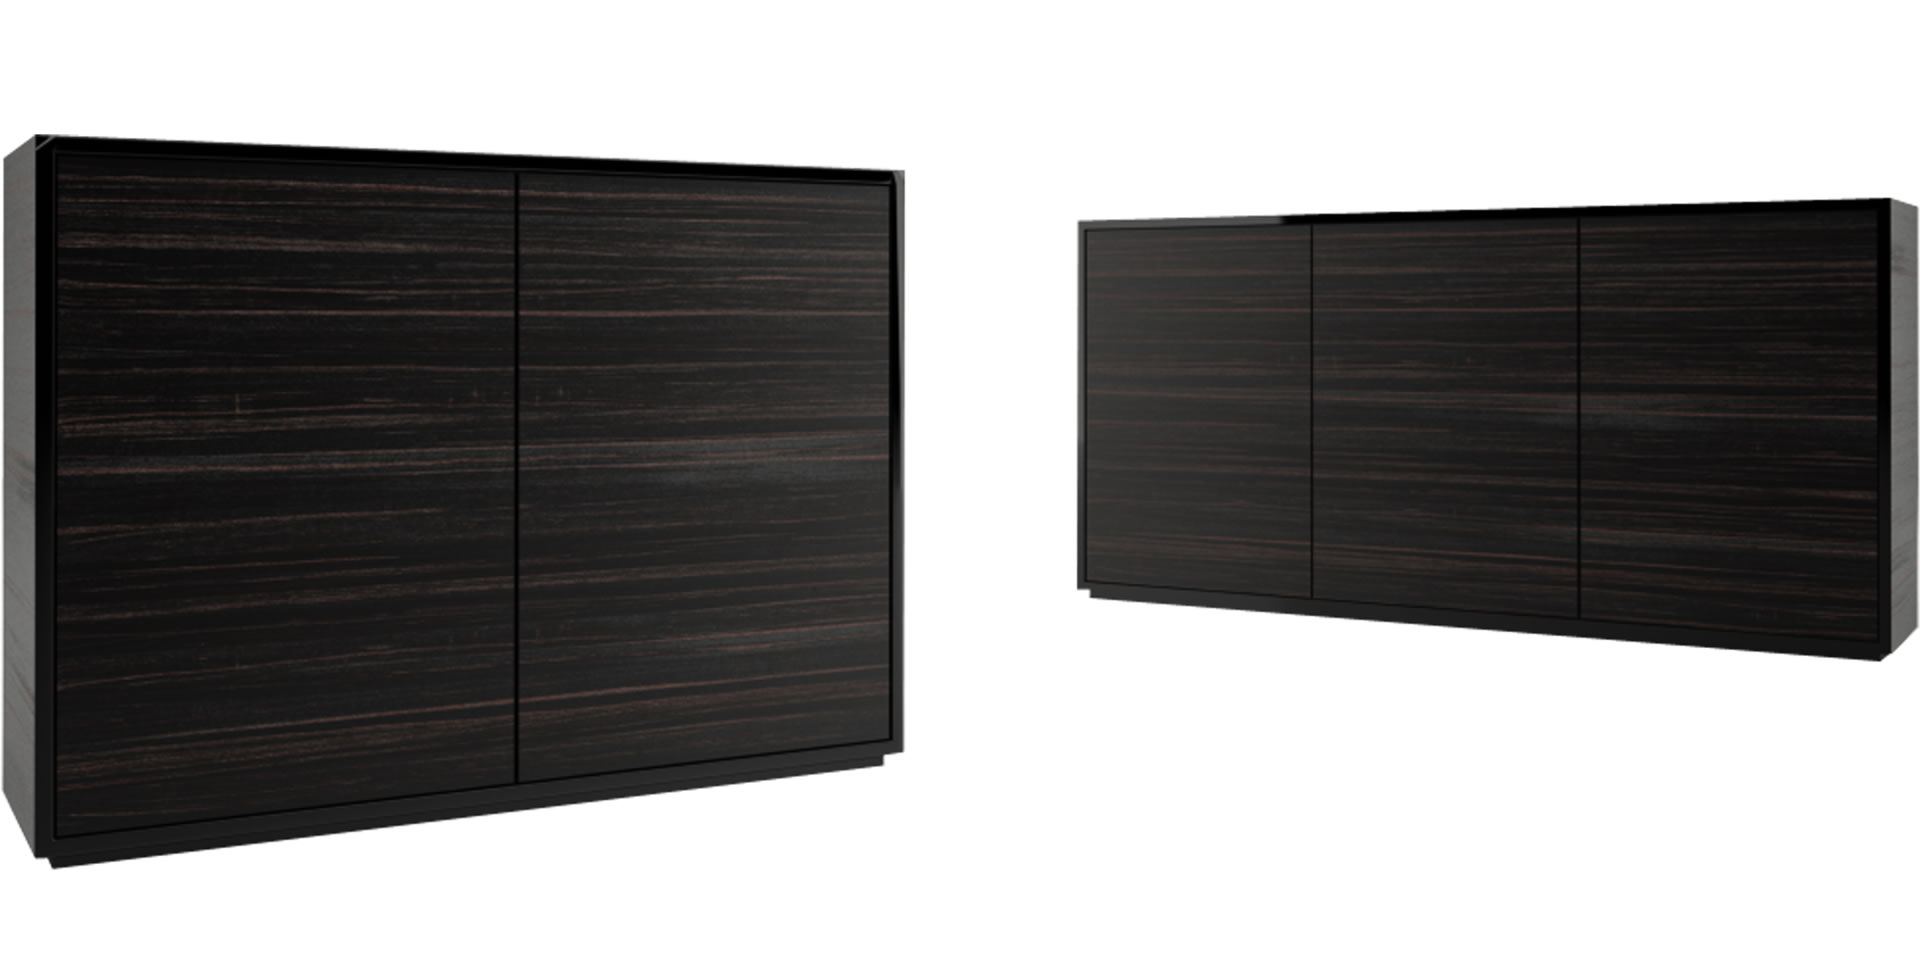 highboard dunkles holz bestseller shop f r m bel und einrichtungen. Black Bedroom Furniture Sets. Home Design Ideas